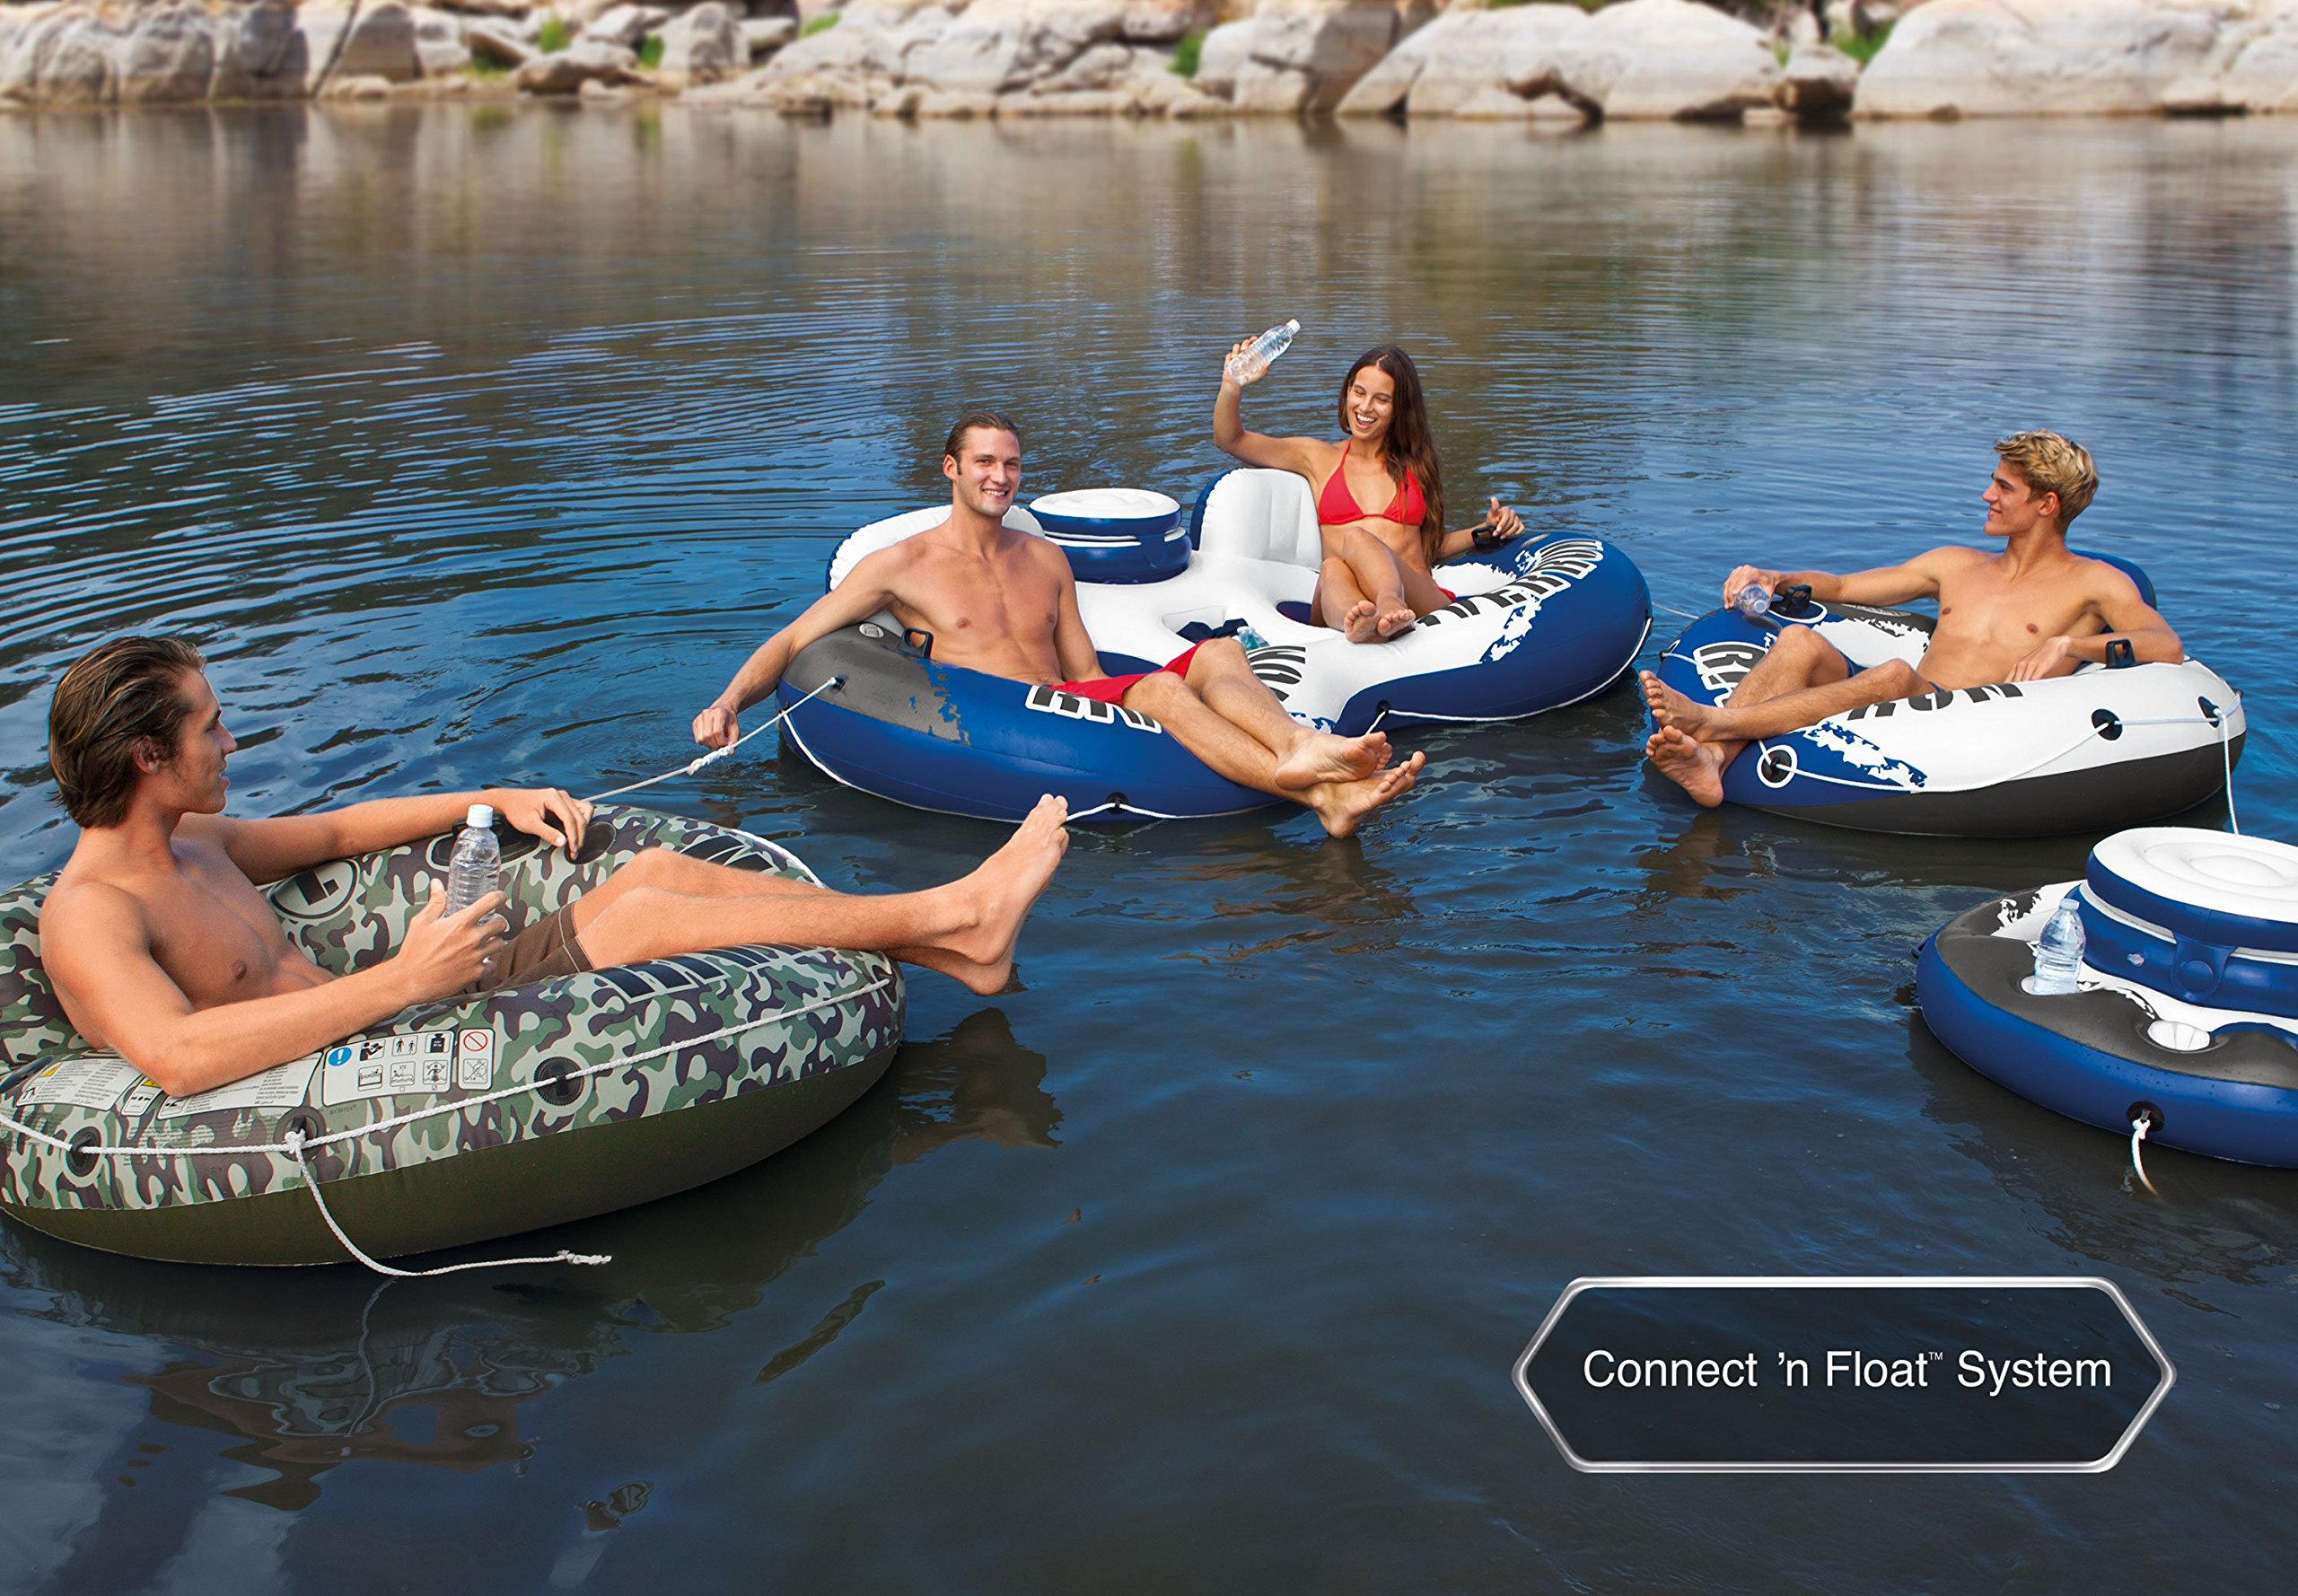 Intex River Run 1 Person Floating Tube (6 Pack) & River Run Lounge (4 Pack) by Intex (Image #10)